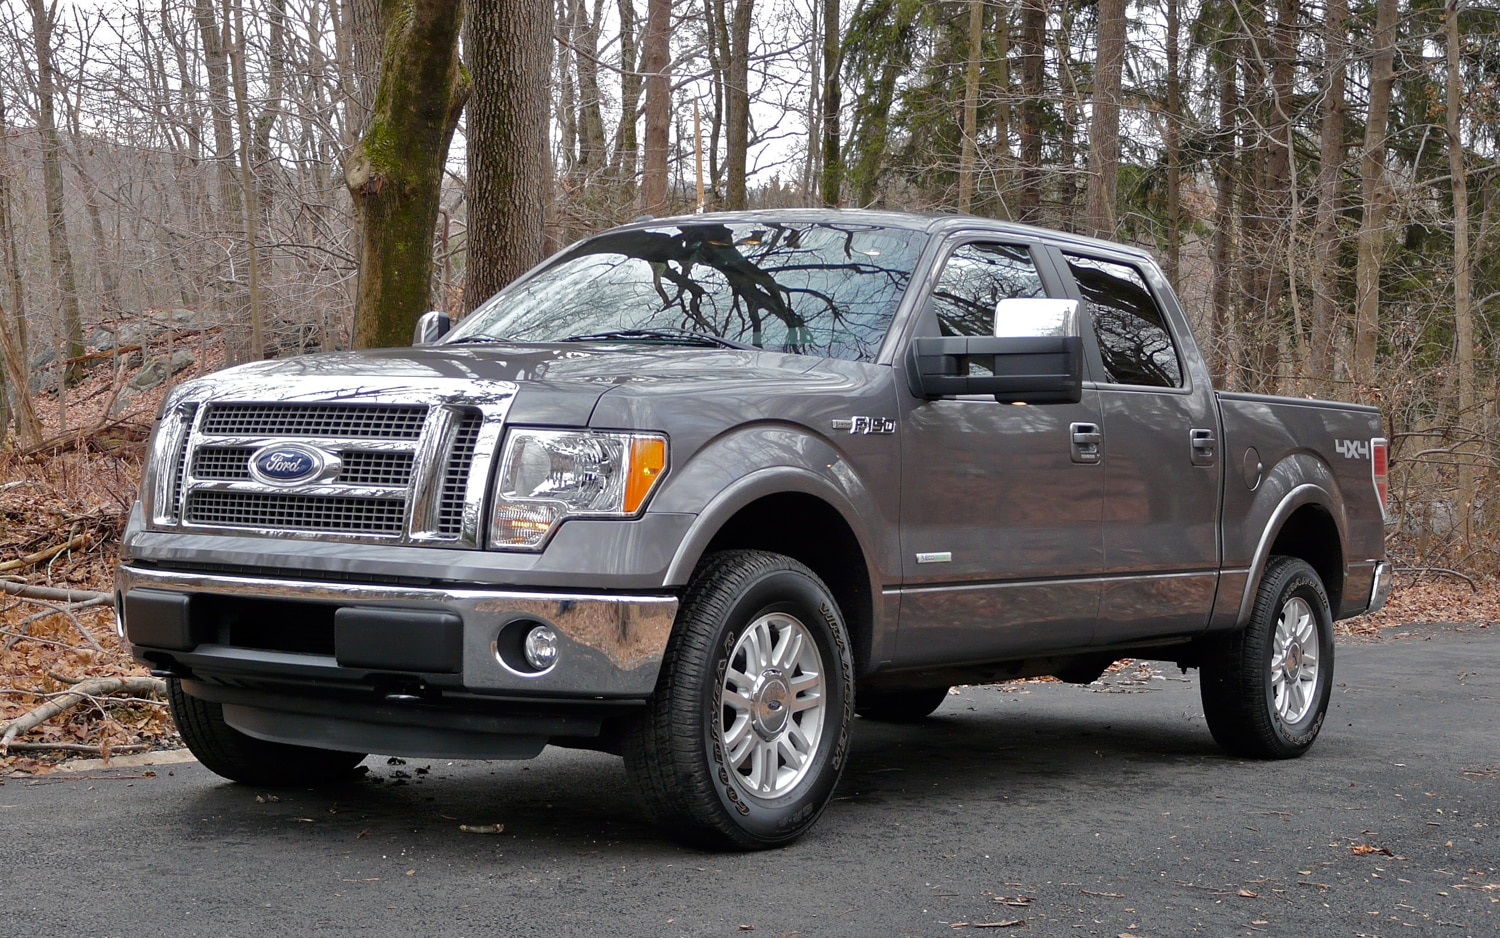 2012 Ford F150 EcoBoost Front Left Side View 2